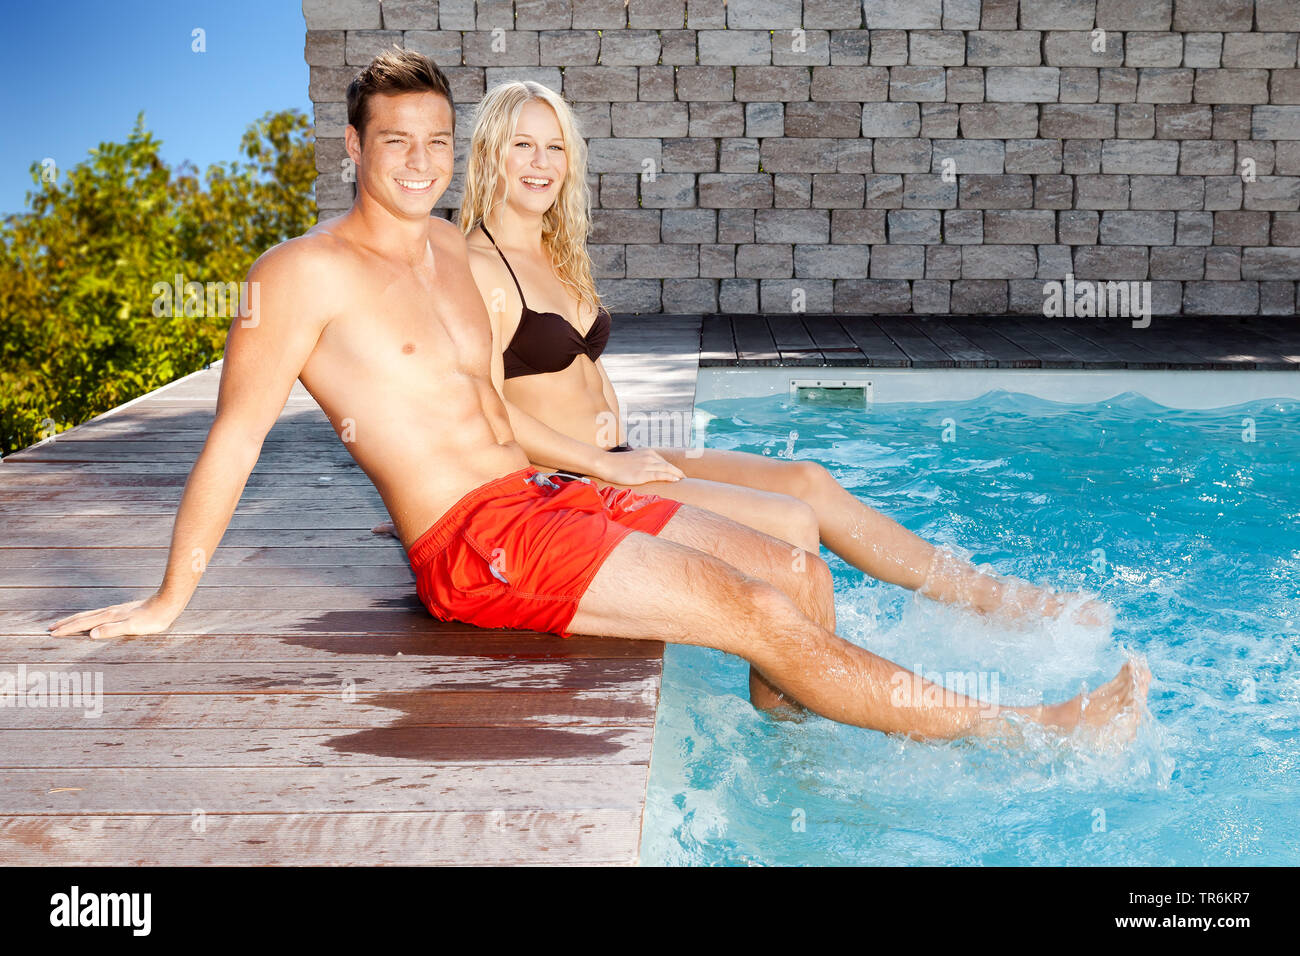 junges Paar entspannt sich am Schwimmbeckenrand, Deutschland | young couple relaxing at a pool, Germany | BLWS486431.jpg [ (c) blickwinkel/McPHOTO/M. - Stock Image